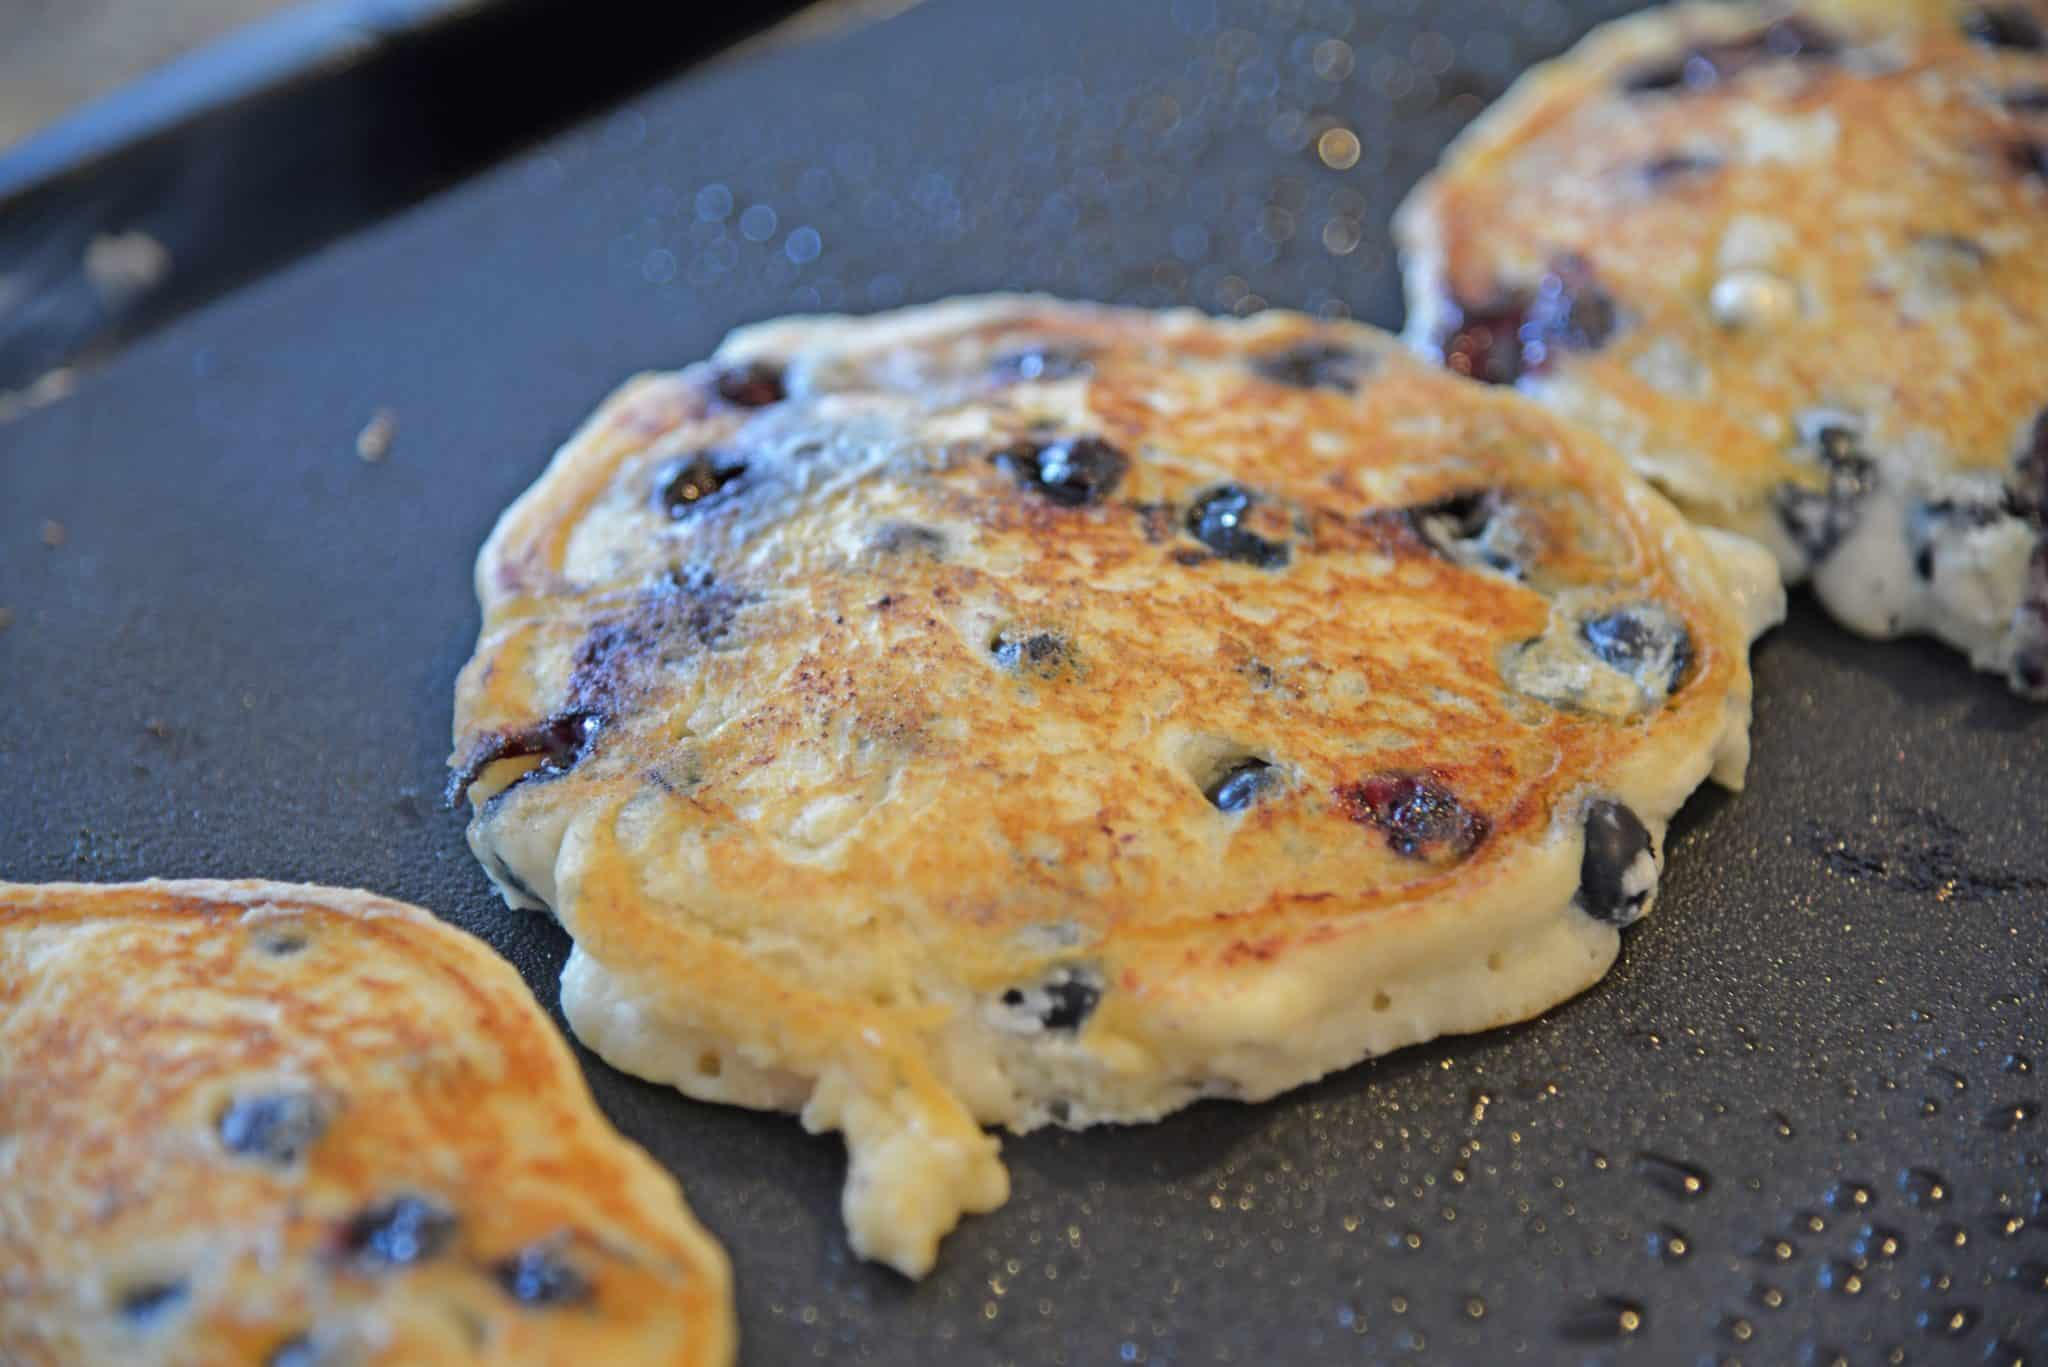 Blueberry Lemon Ricotta Pancakes! Make these easy blueberry pancakes with ricotta. Ricotta hotcakes are super fluffy pancakes. Best pancakes from scratch! #lemonricottapancakes #bestblueberrypancakes www.savoryexperiments.com